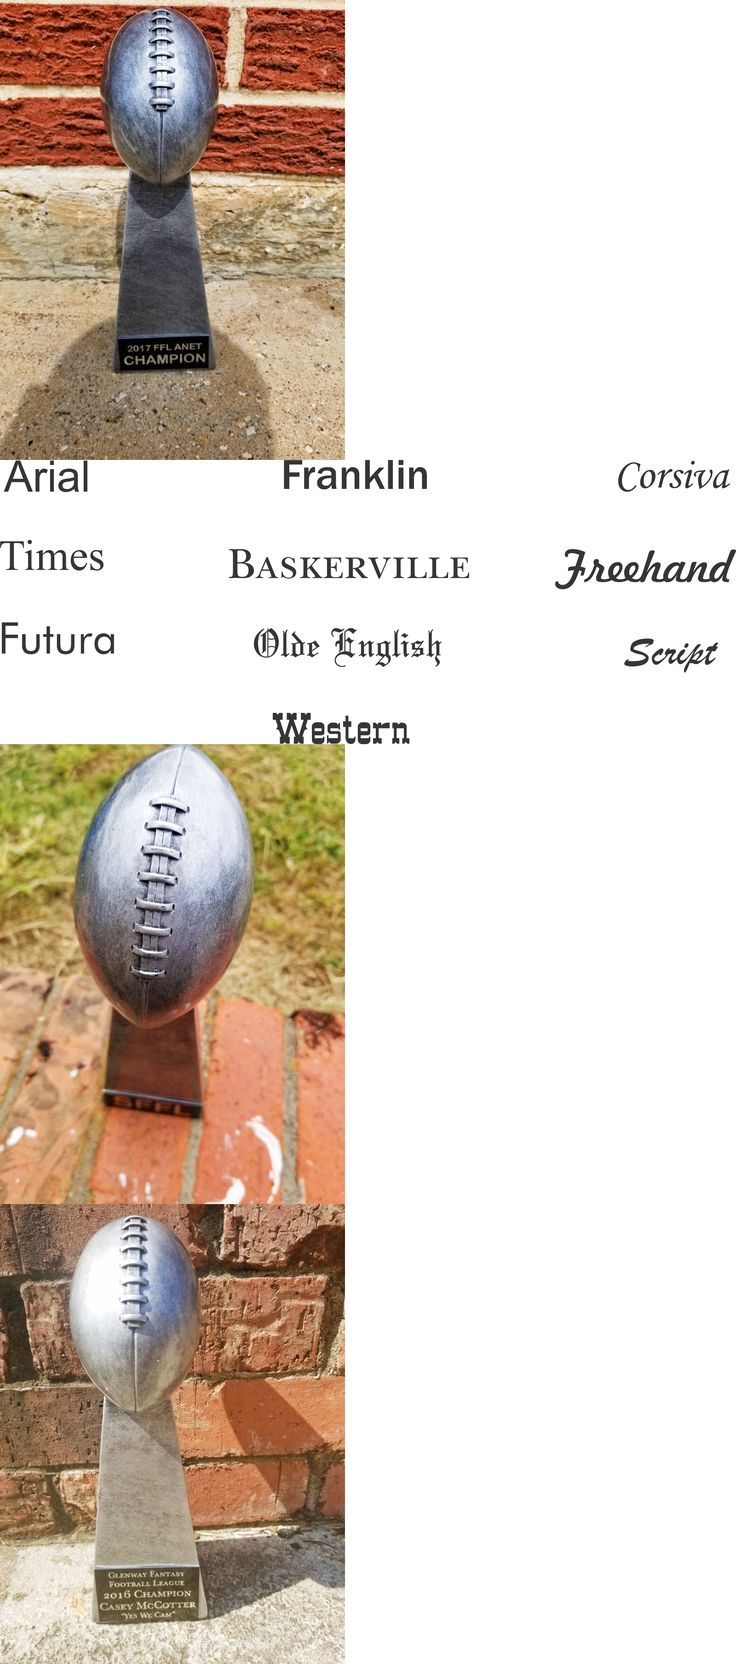 Other Football 2024: 10 Antique Silver Fantasy Football Trophy, Football Award -> BUY IT NOW ONLY: $30 on eBay!